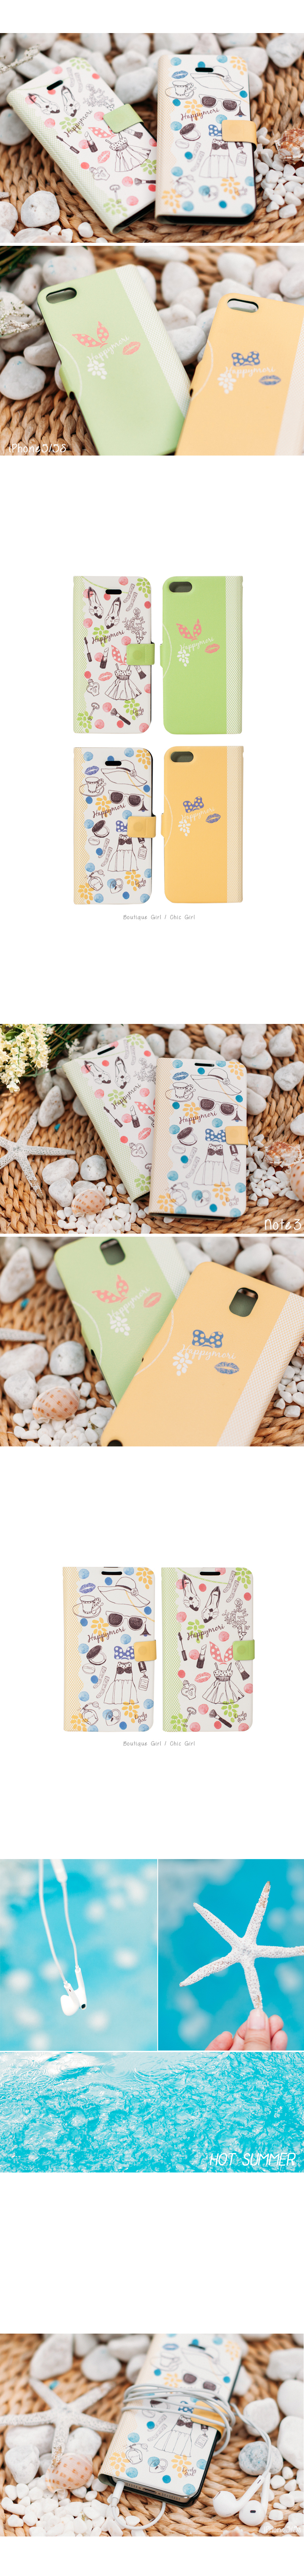 [HAPPYMORI] Flip Cover Case _ gossipgirl(iPhone6Plus,iPhone6Plus_s,Galaxy S6Edge,Galaxy S6,Galaxy Note4)